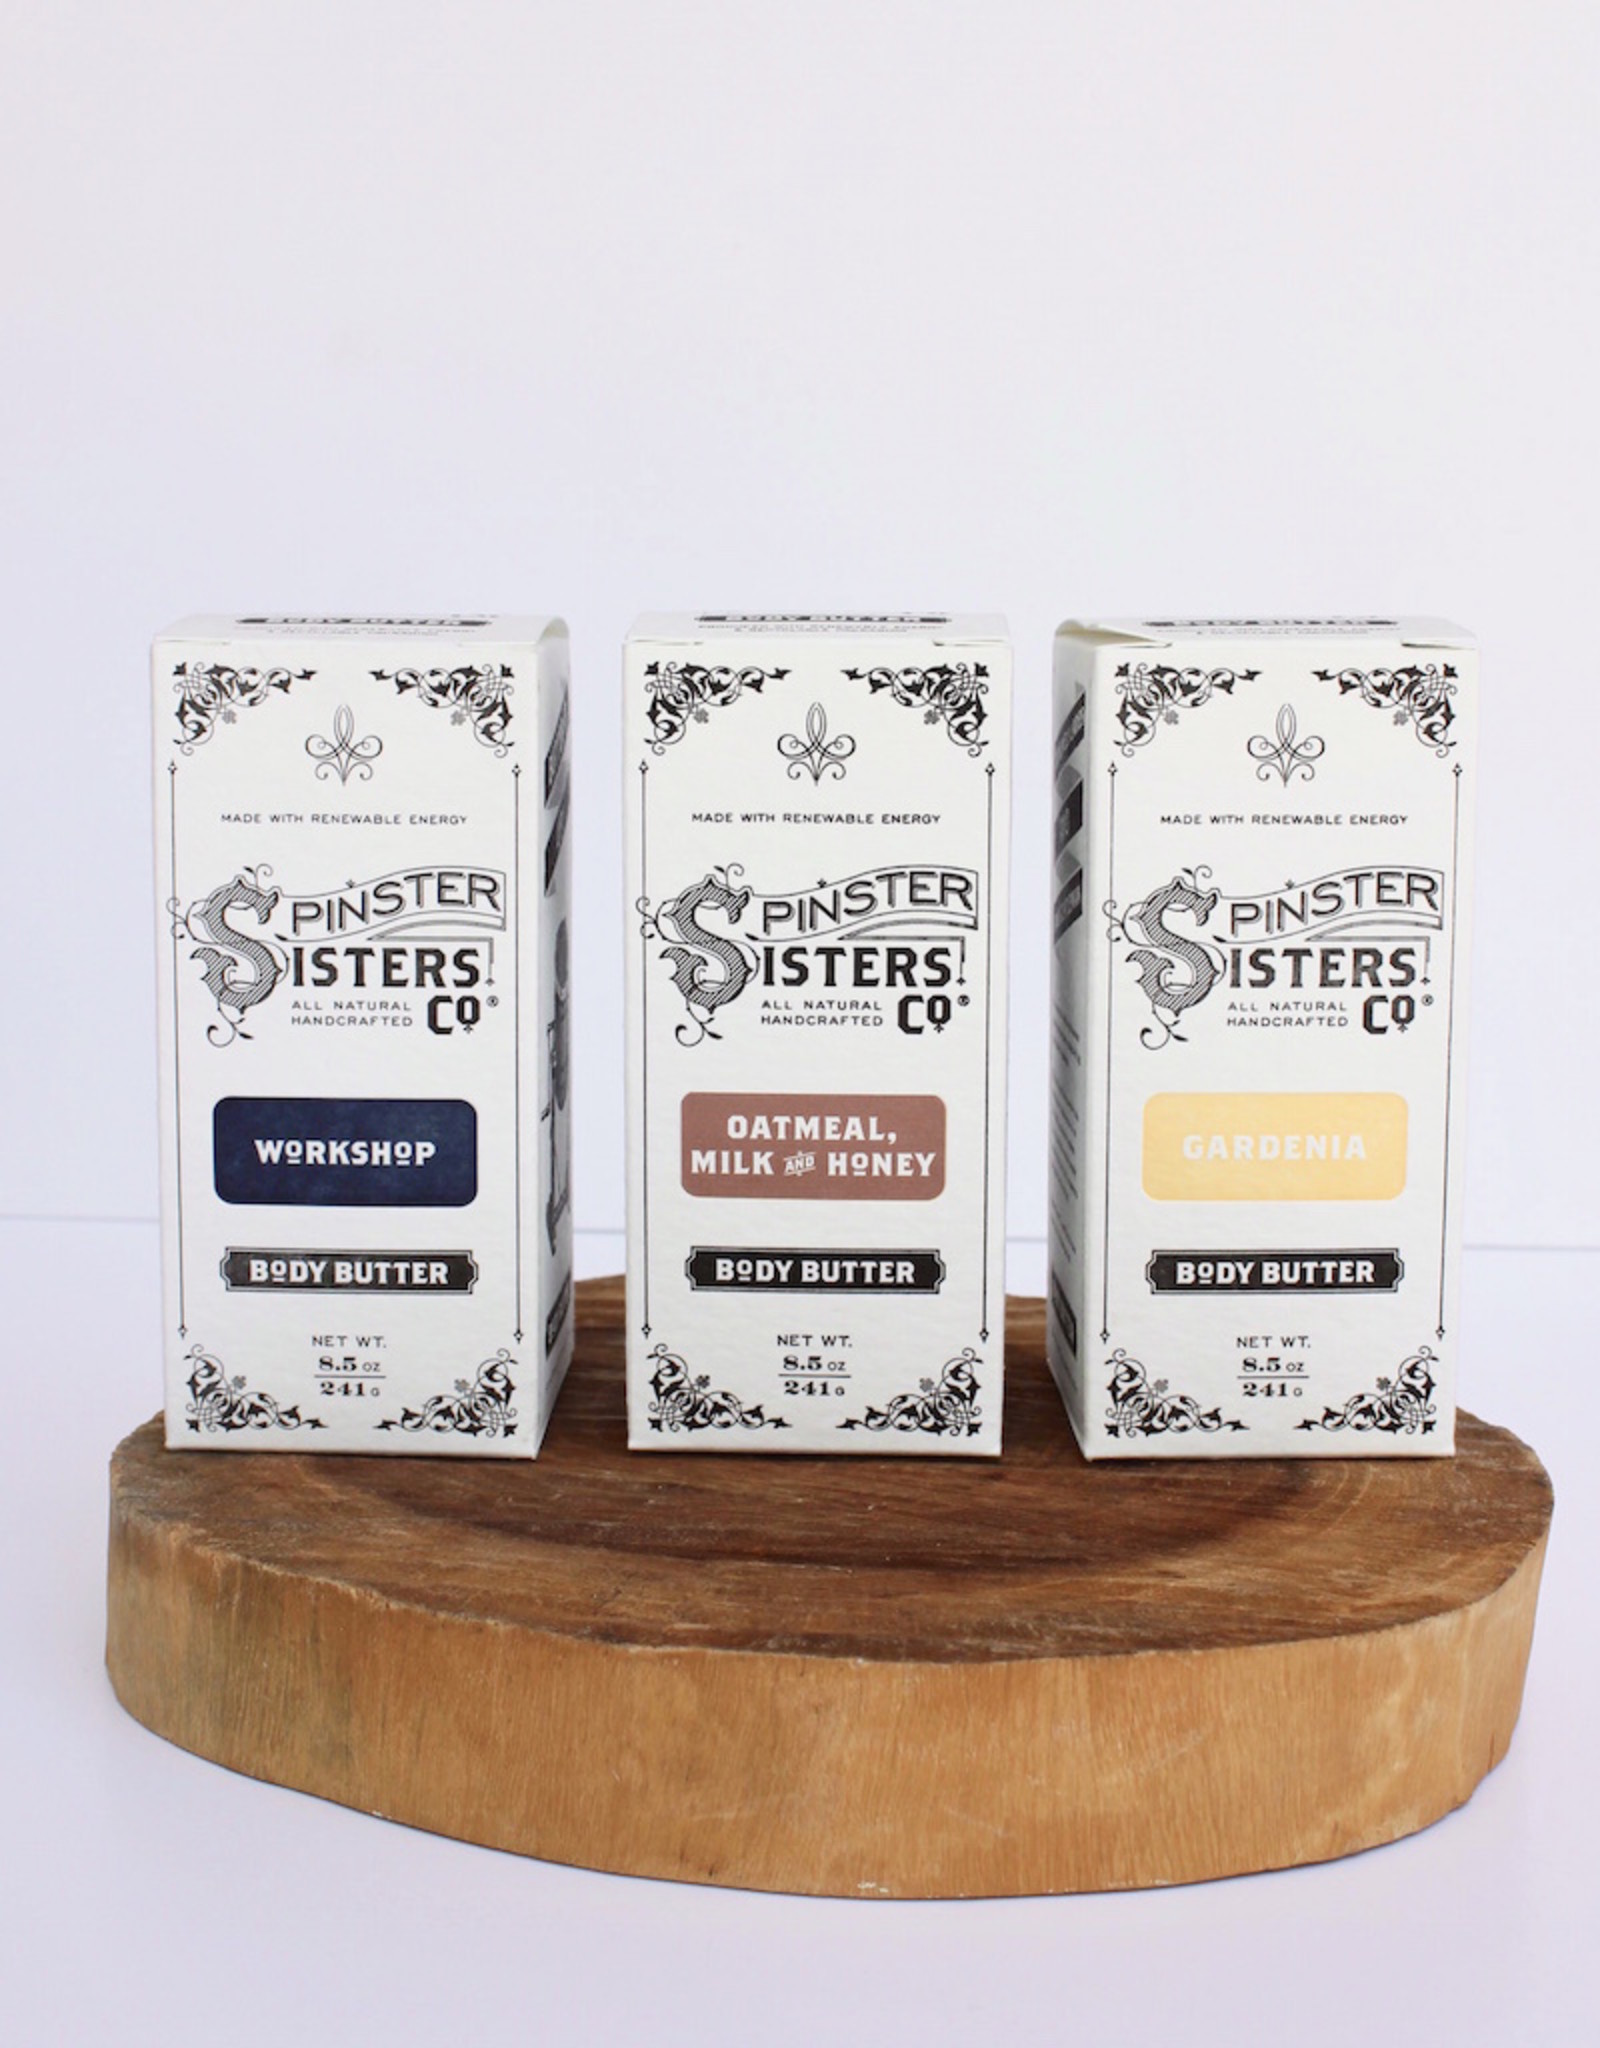 Spinster Sisters Body Butter